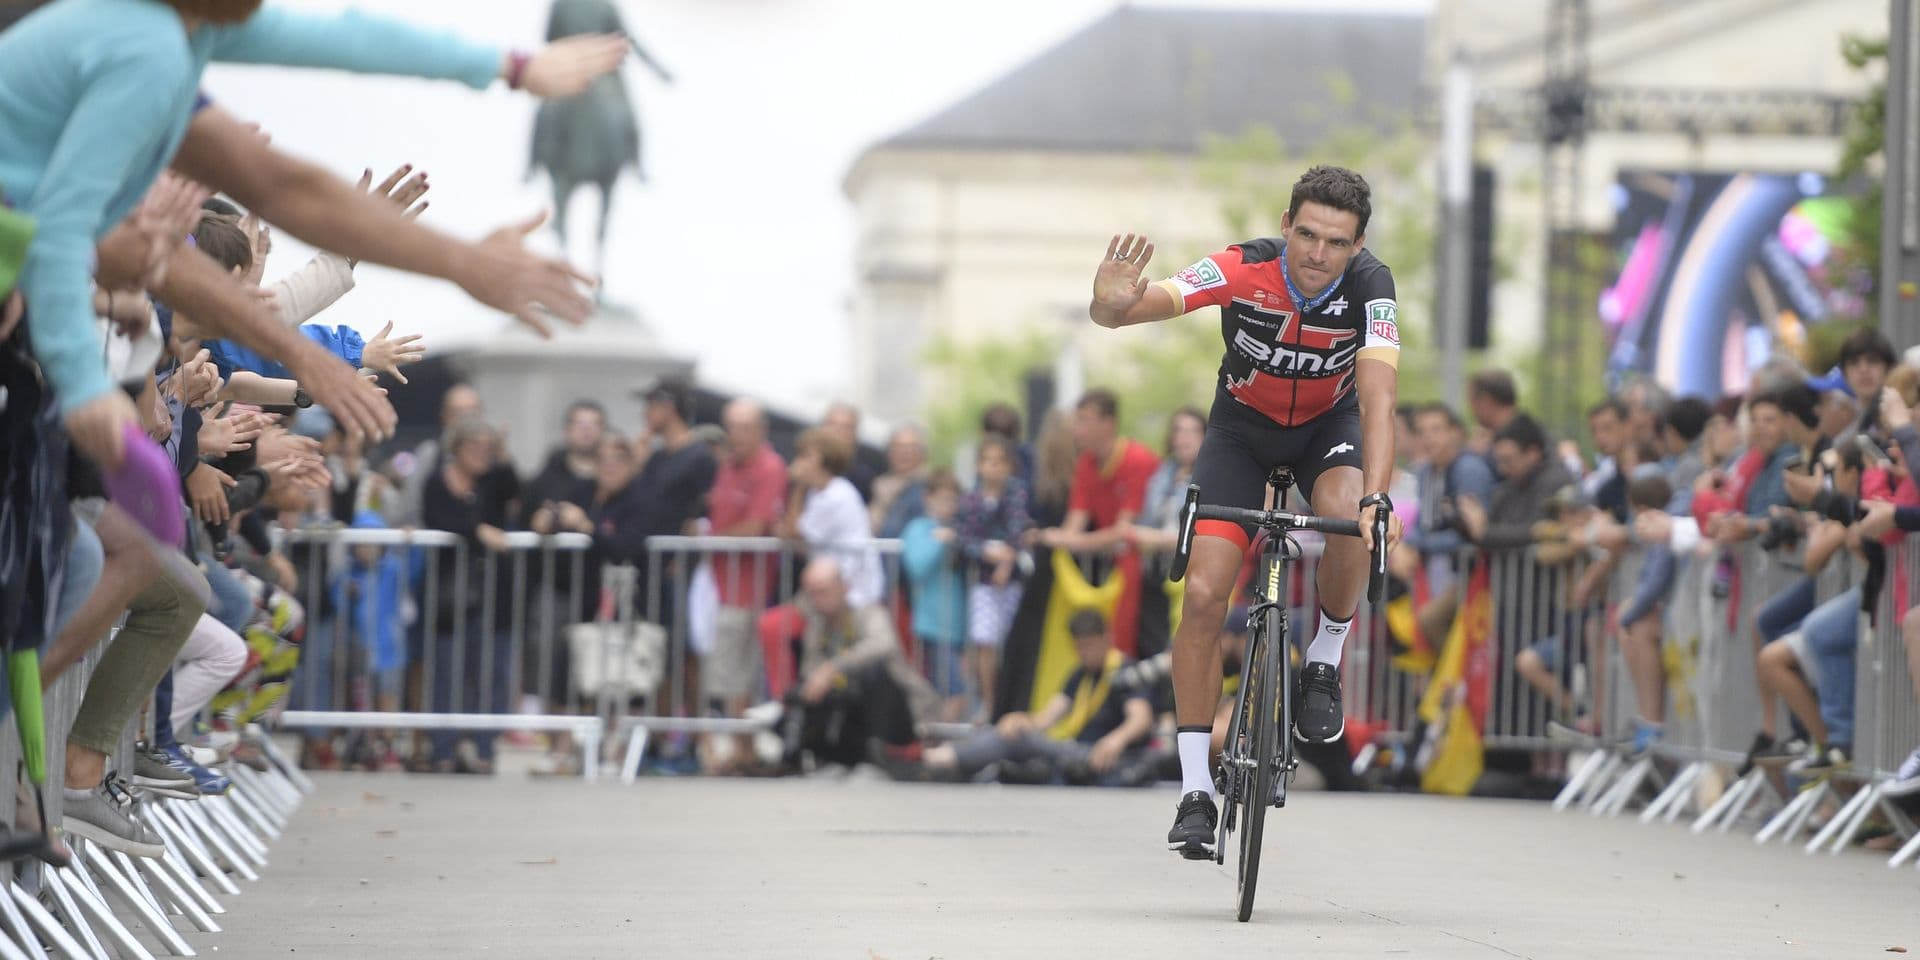 Belgian Greg Van Avermaet of BMC Racing Team pictured during the team presentation of the 105th edition of the Tour de France cycling race, in La-Roche-sur-Yon, France, Thursday 05 July 2018. This year's Tour de France takes place from July 7th to July 29th. BELGA PHOTO YORICK JANSENS